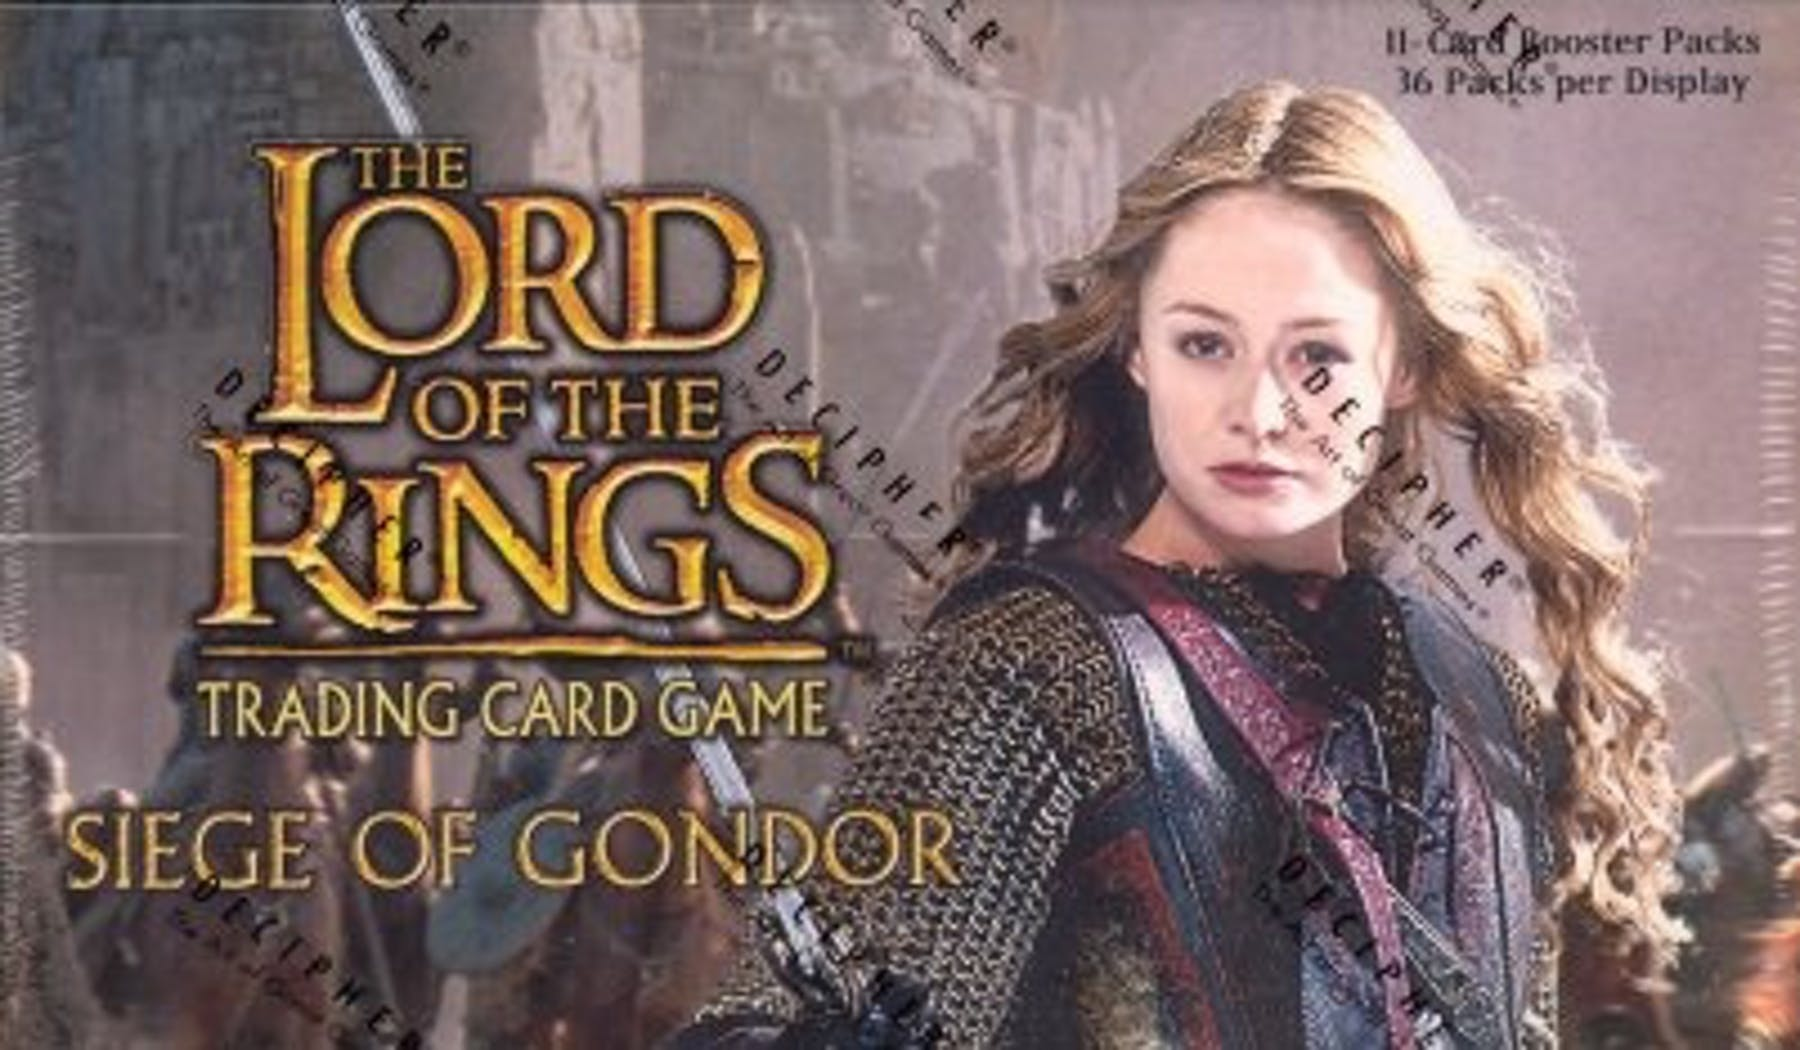 Lord of the Rings TCG Siege of Gondor Booster Box Decipher